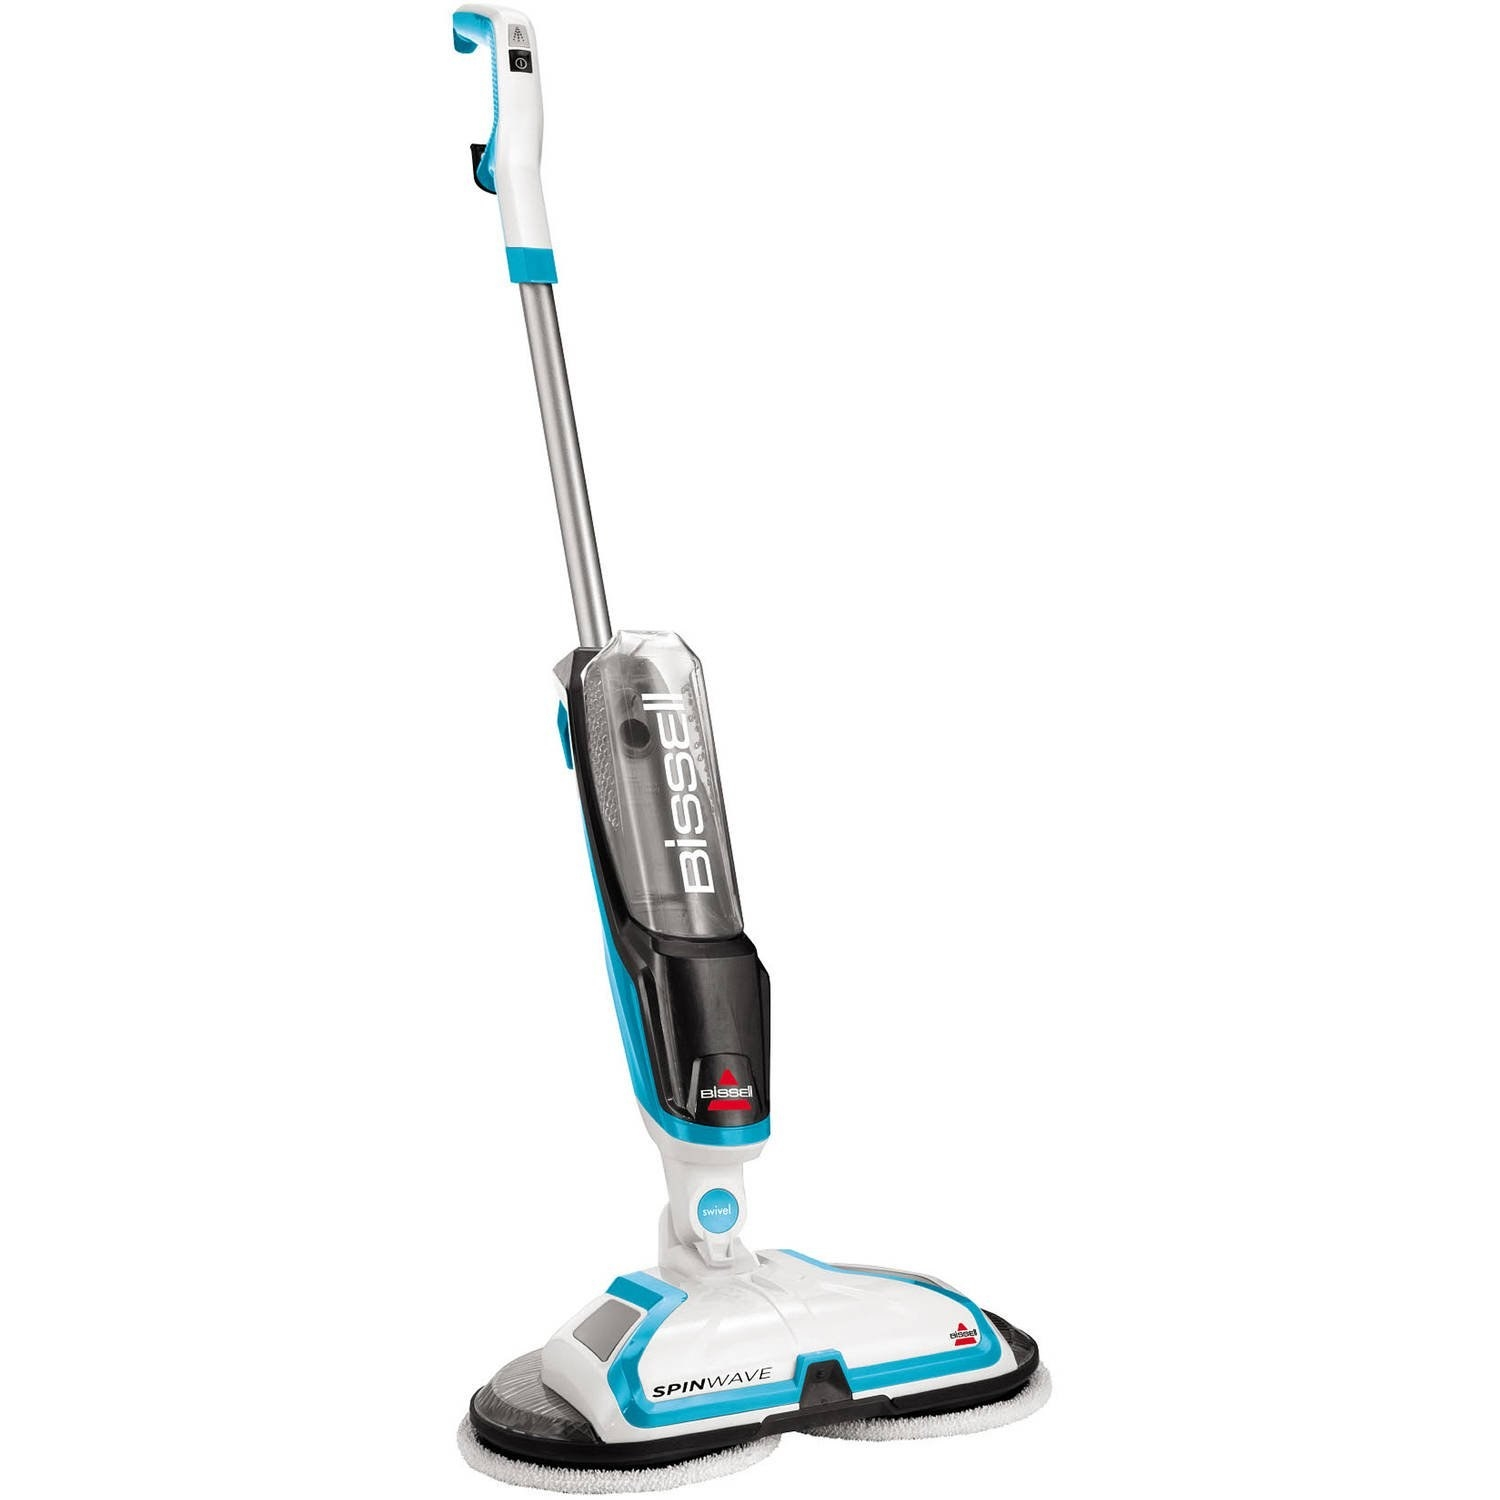 a white and blue bissell hardfloor powered mop